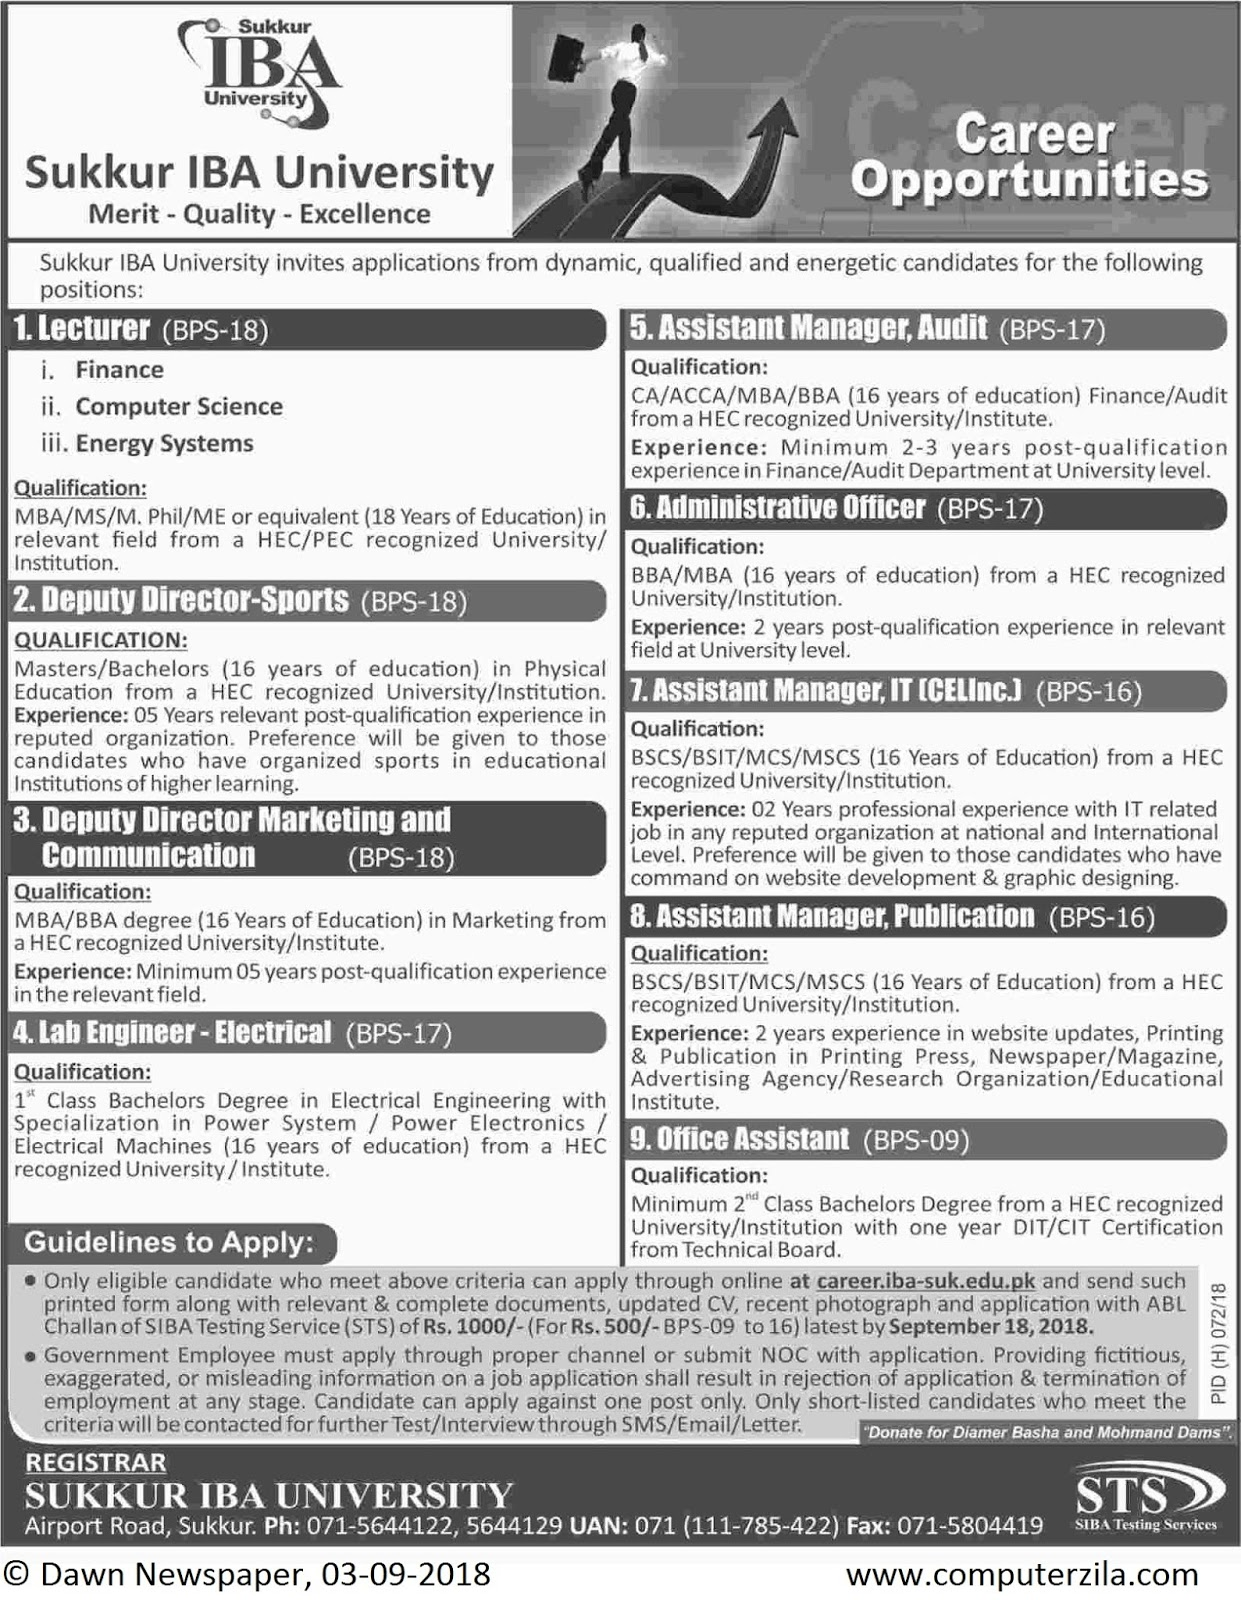 Career Opportunities at Sukkur IBA University